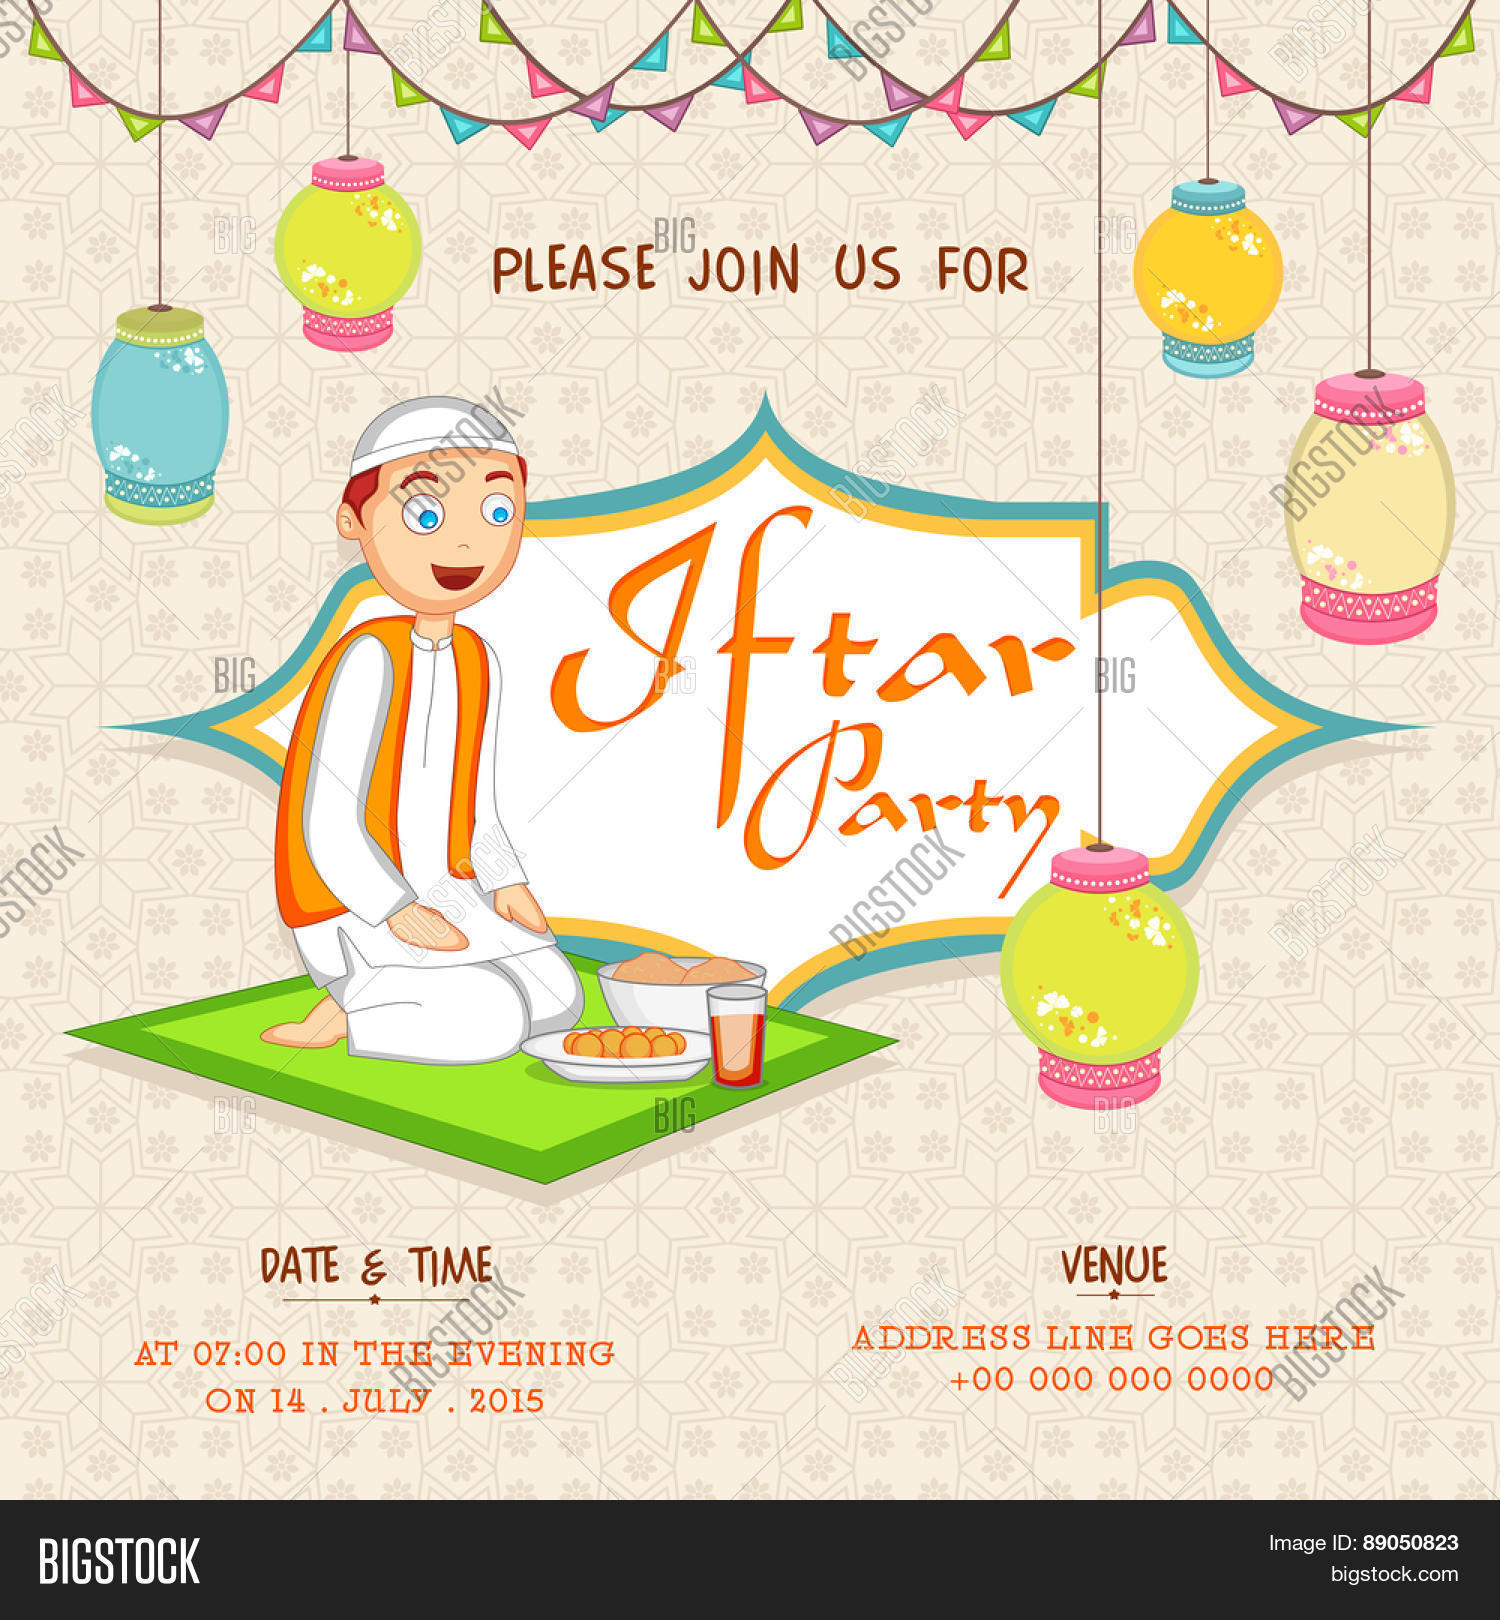 Islamic holy month prayers vector photo bigstock islamic holy month of prayers ramadan kareem iftar party celebration invitation card decorated with hanging stopboris Images